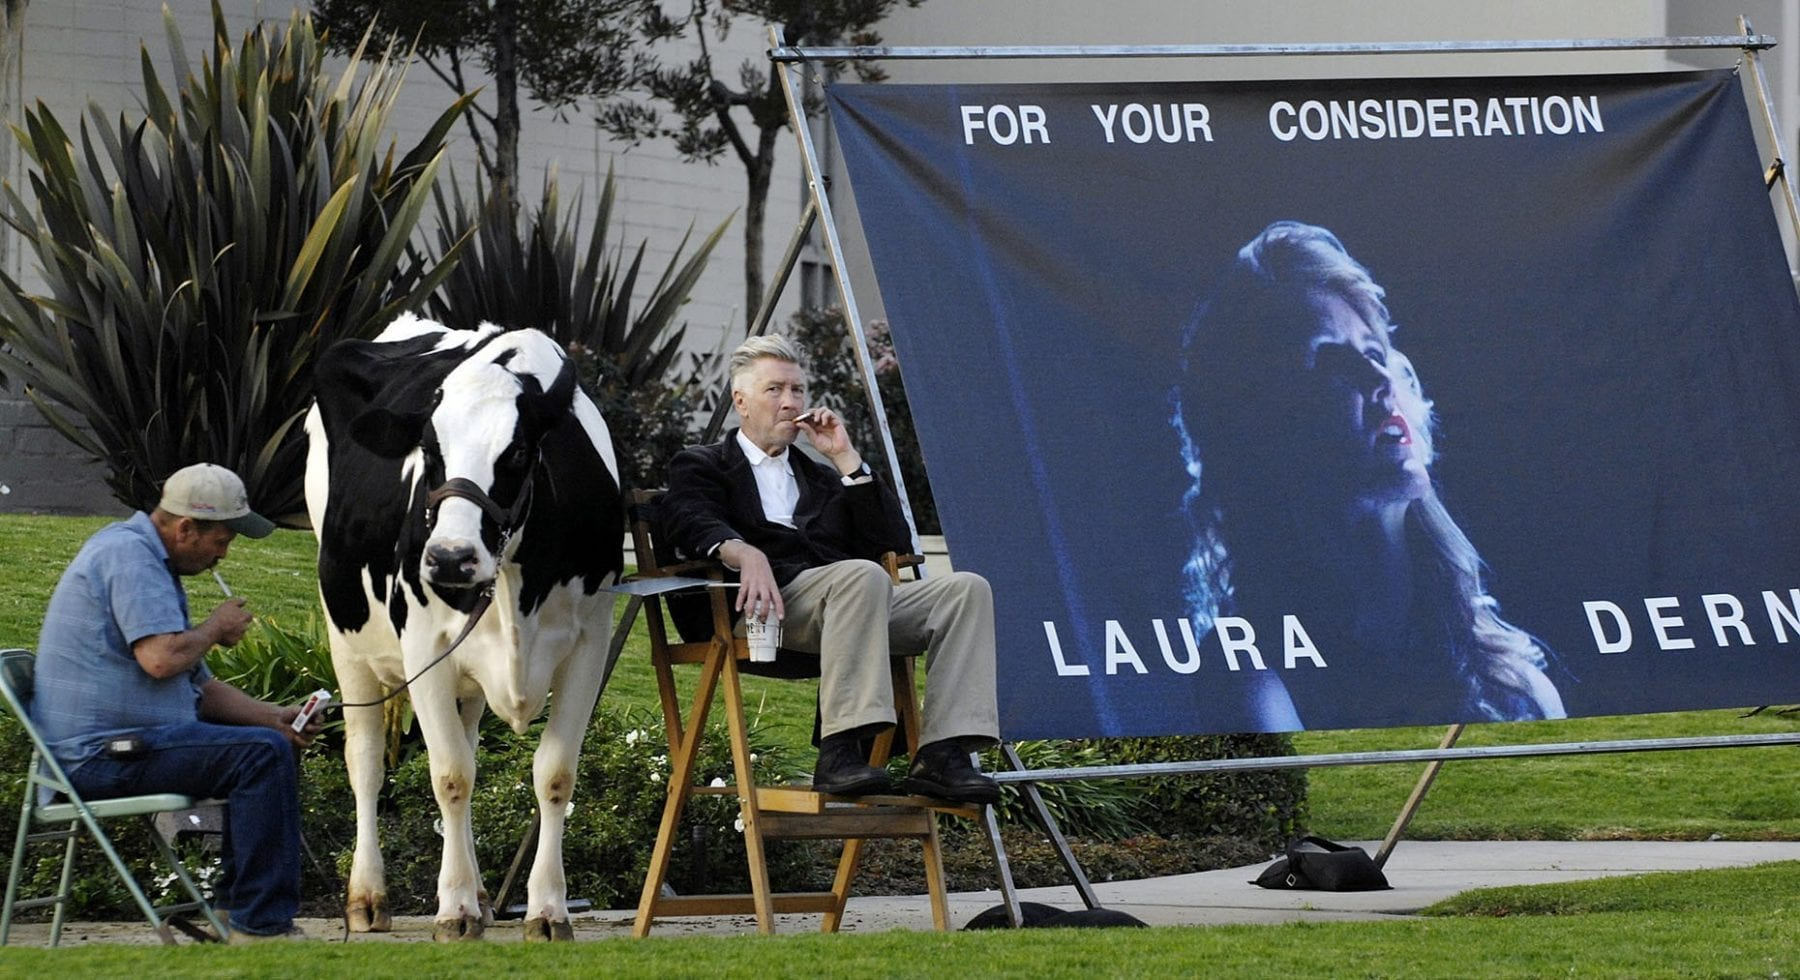 David Lynch campaigns for Laura Dern with a cow